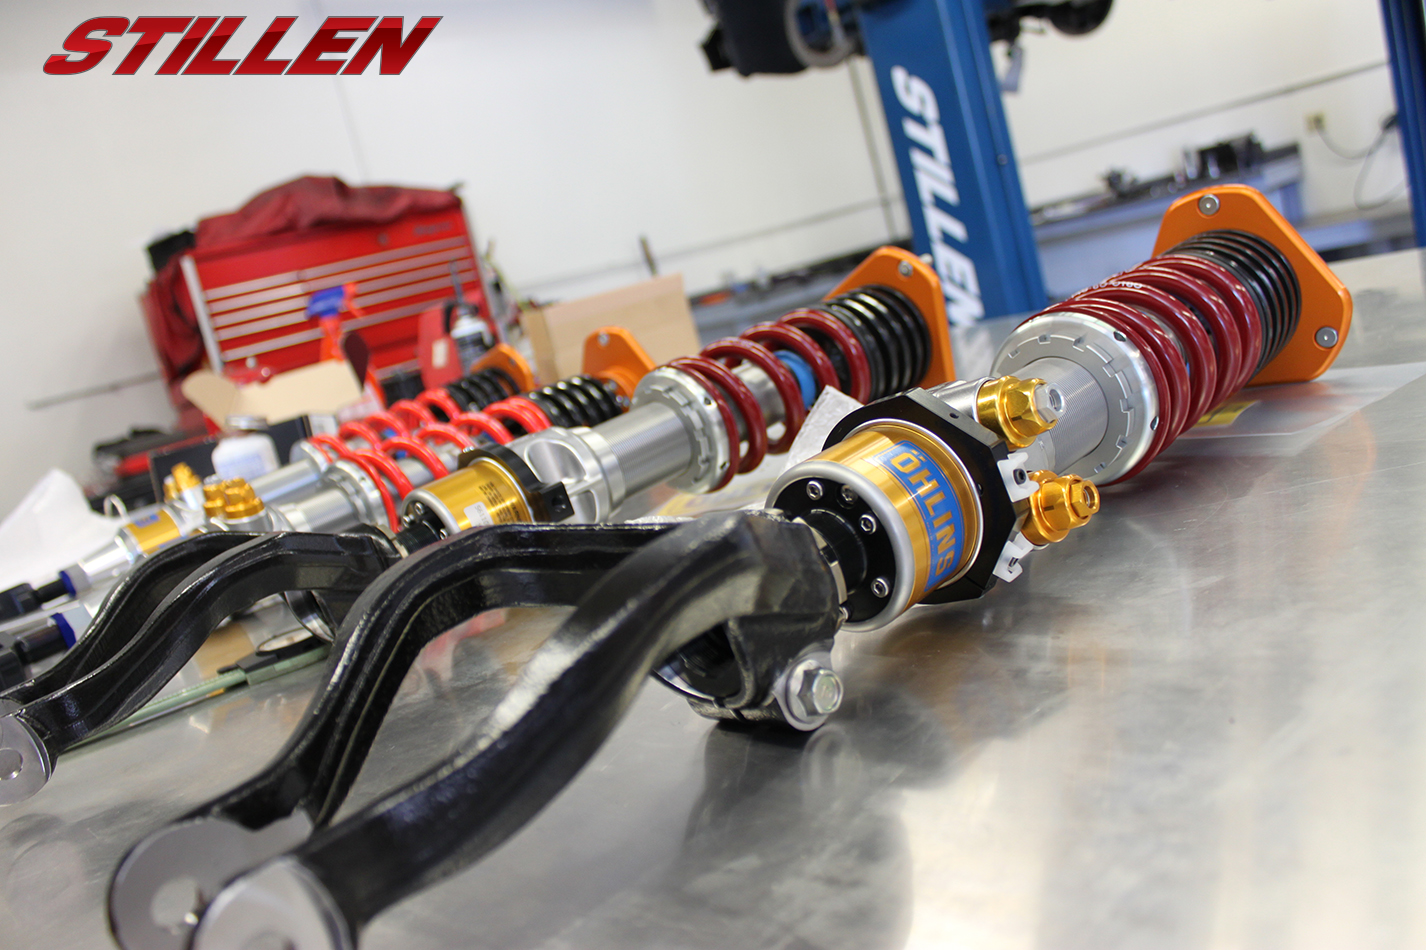 STILLEN NISMO GT-R N Attack - 2015 - parts Ohlins